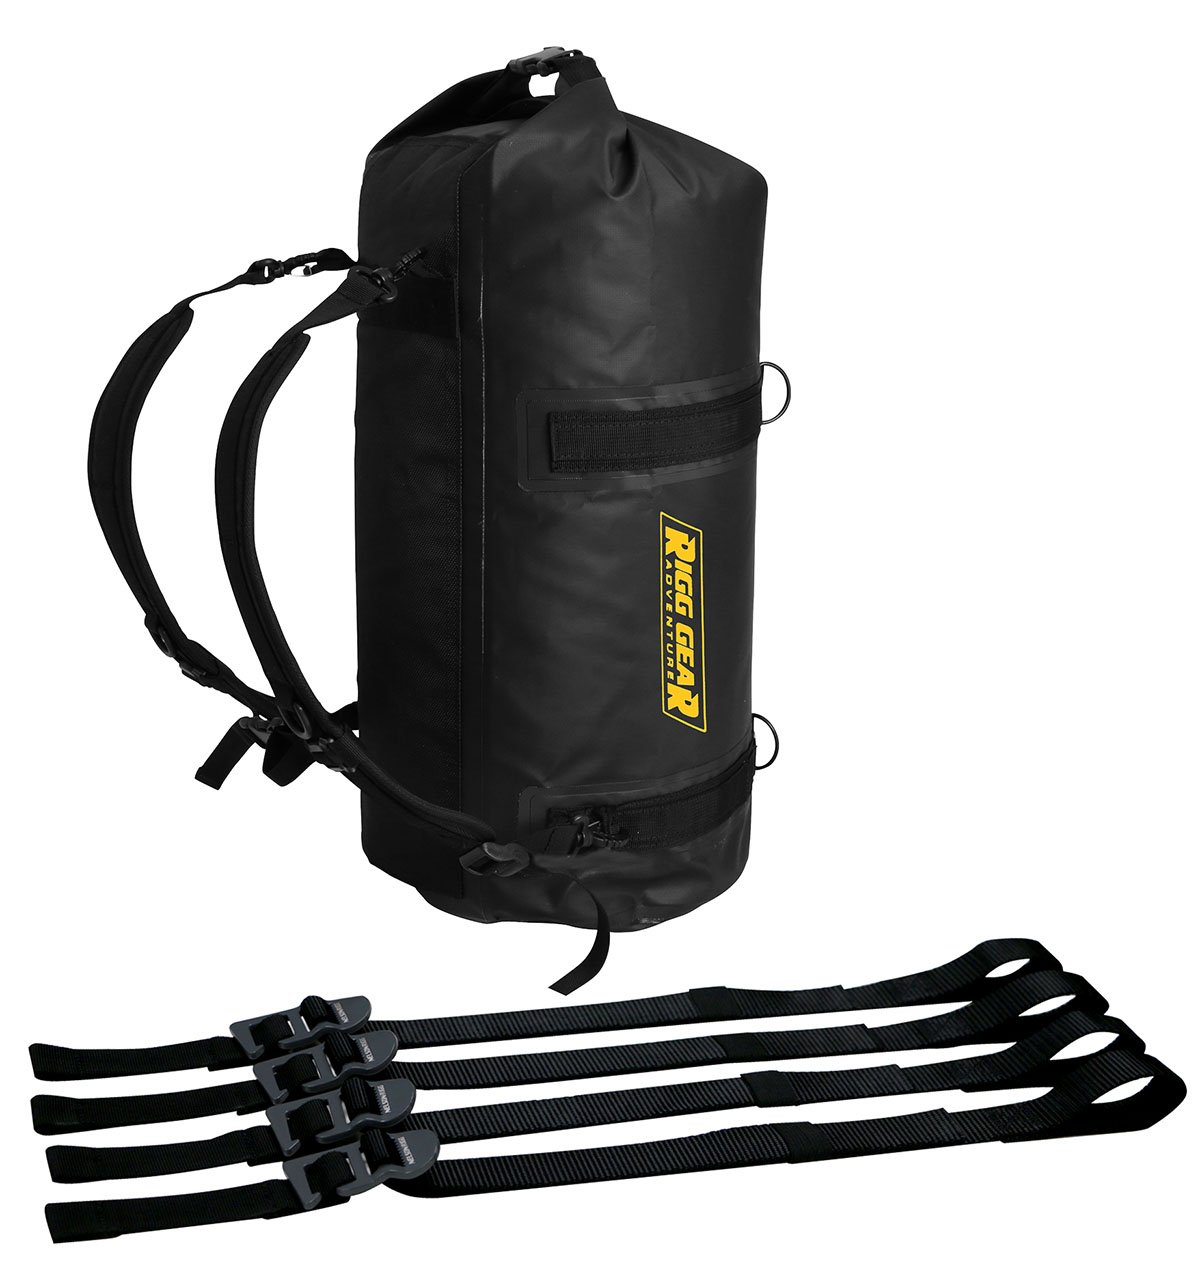 Nelson Rigg (SE-1030) Ridge Roll Dry Bag 30L 100% Waterproof with Backpack Straps,Black